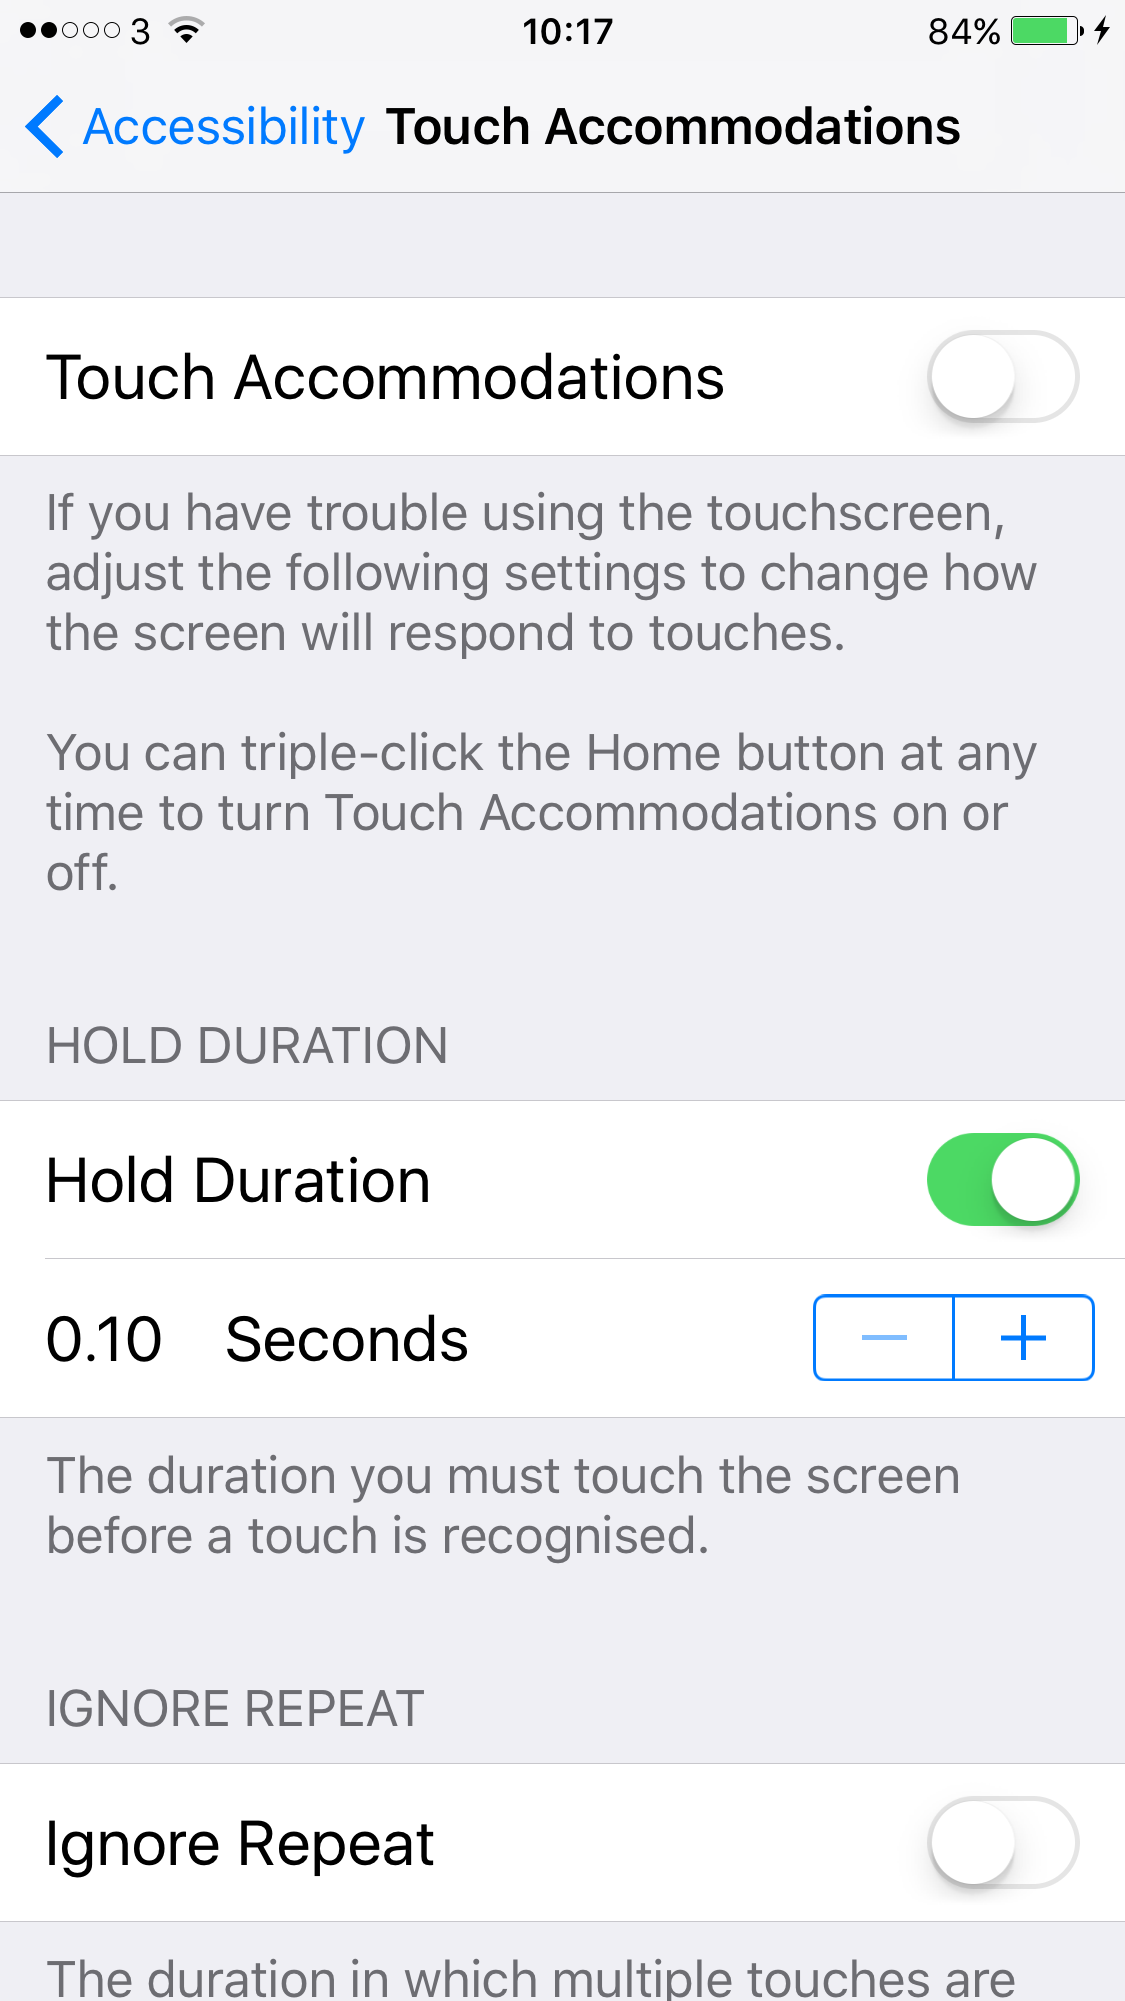 screenshot of Touch Accommodations menu settings showing hold duration options